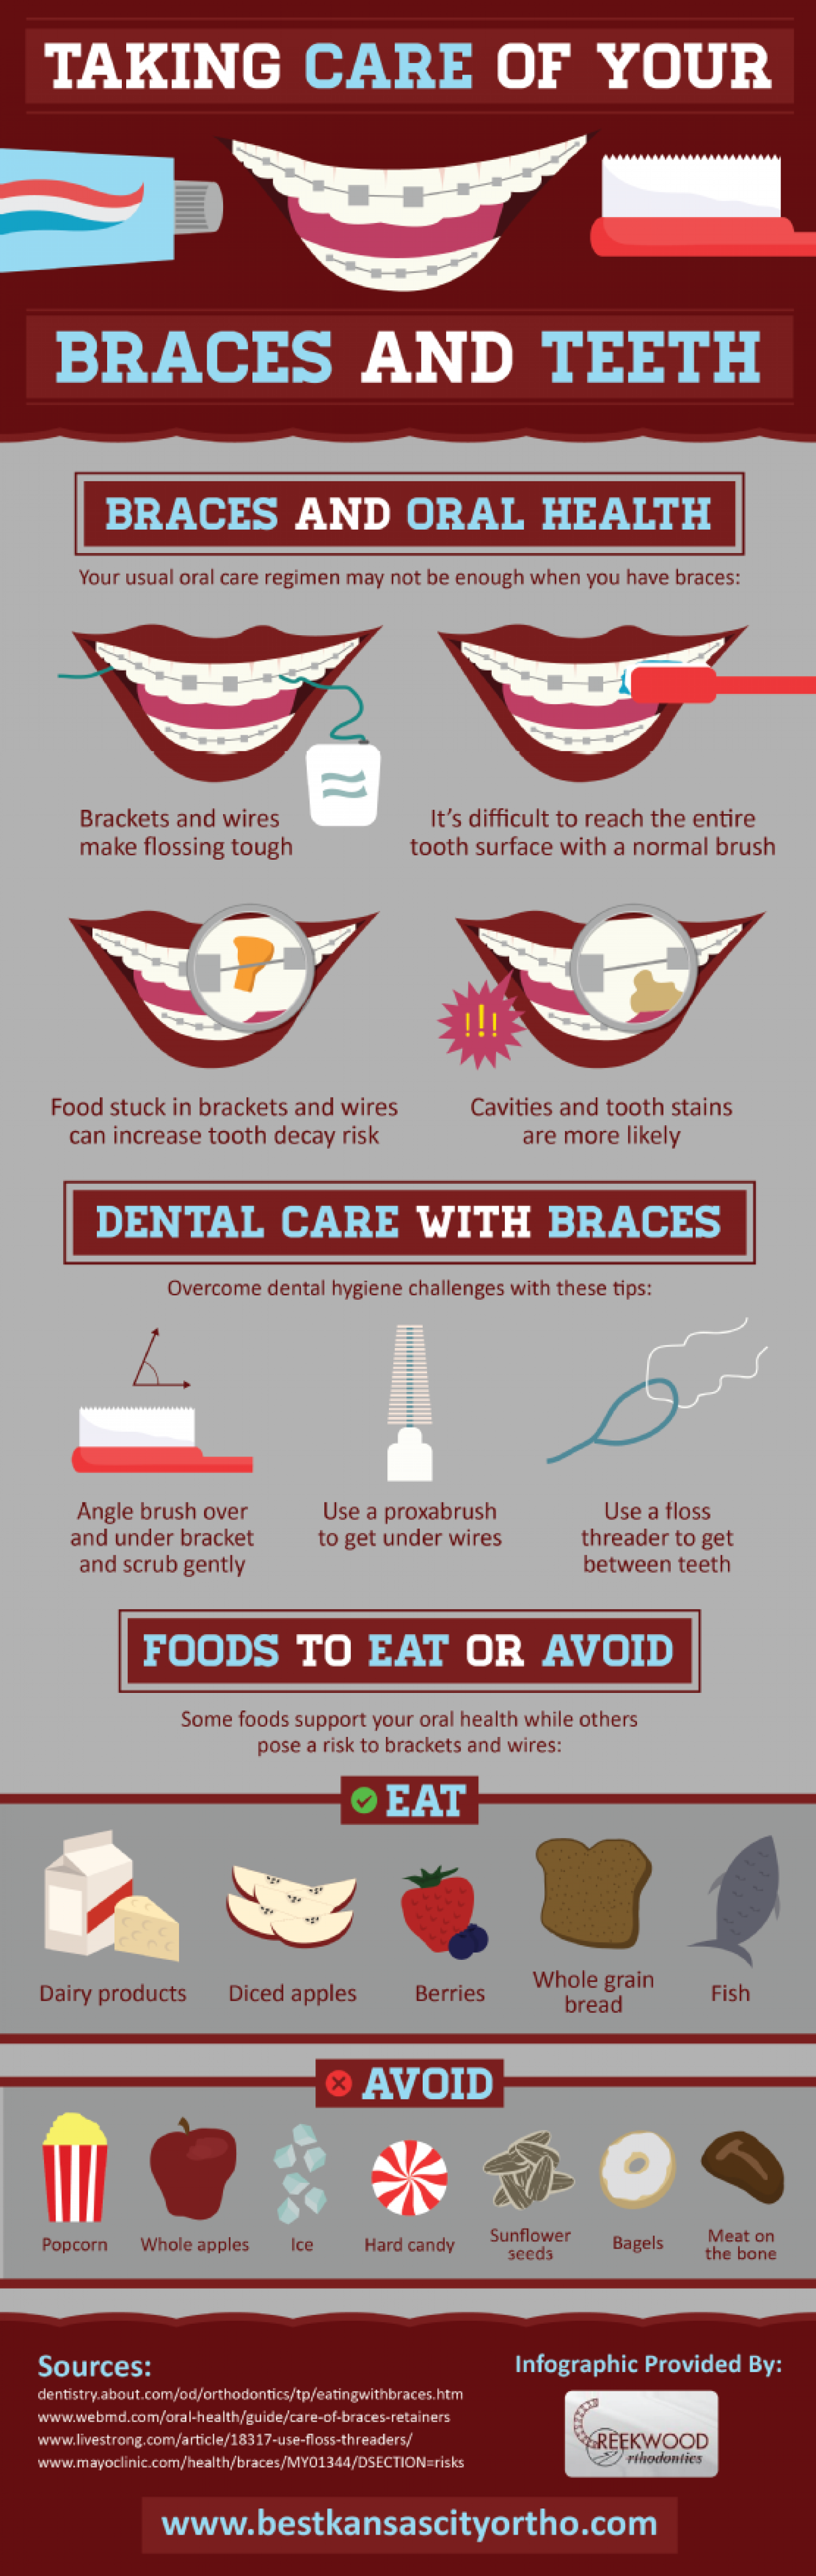 Taking Care of Your Braces and Teeth Infographic